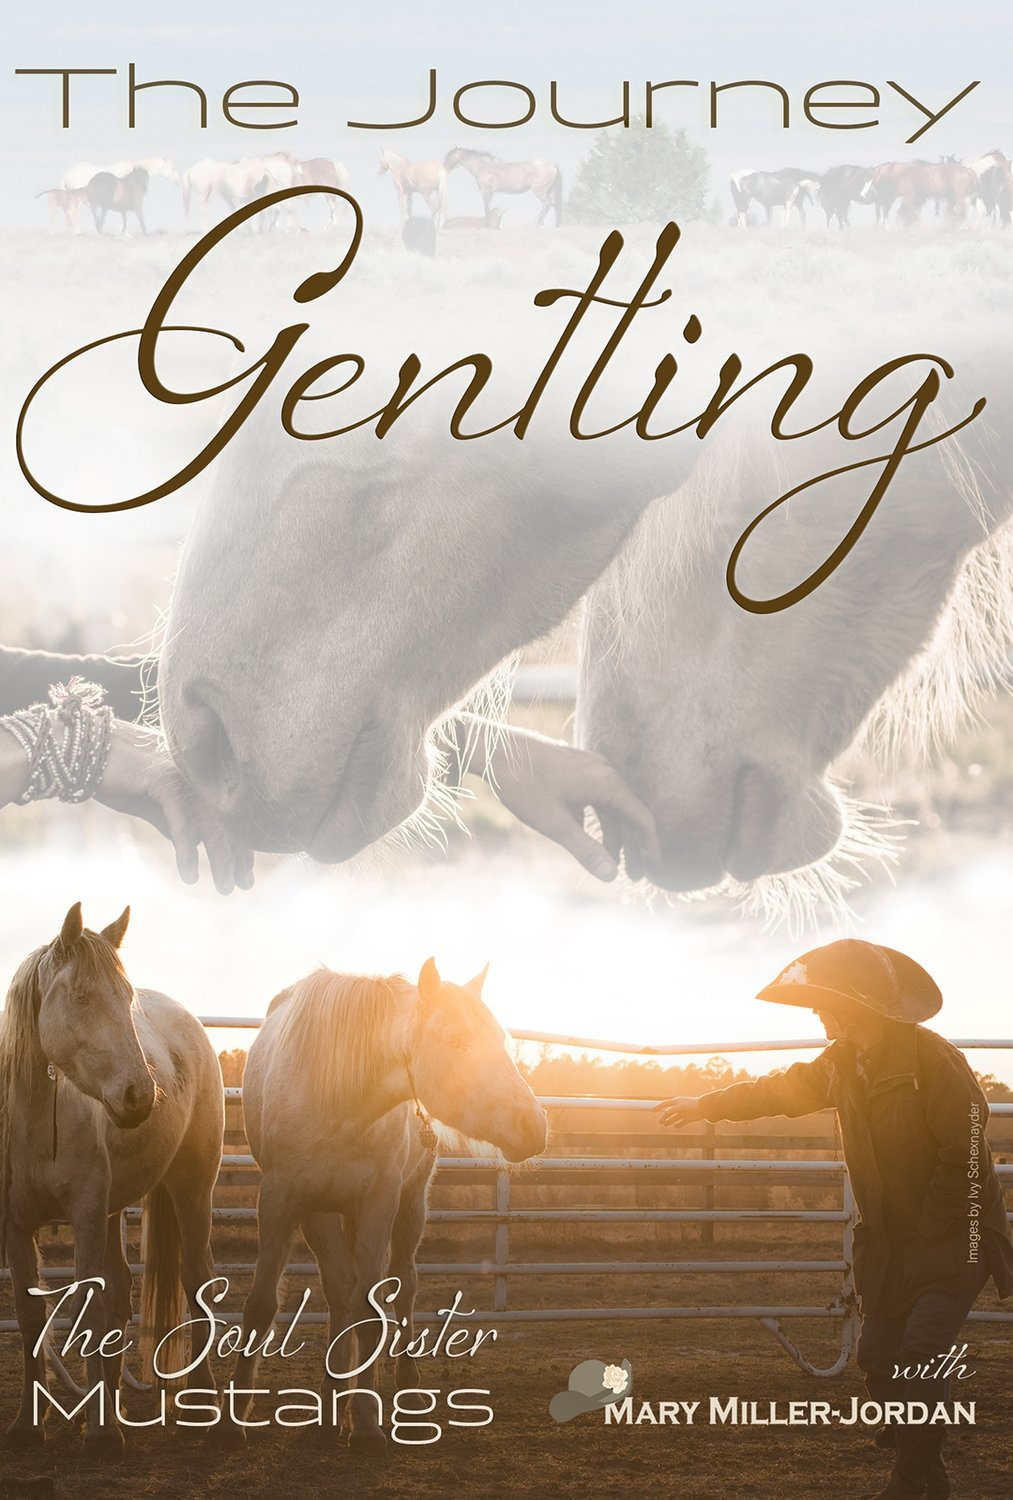 Digital Download of The Journey Gentling the Soul Sisters